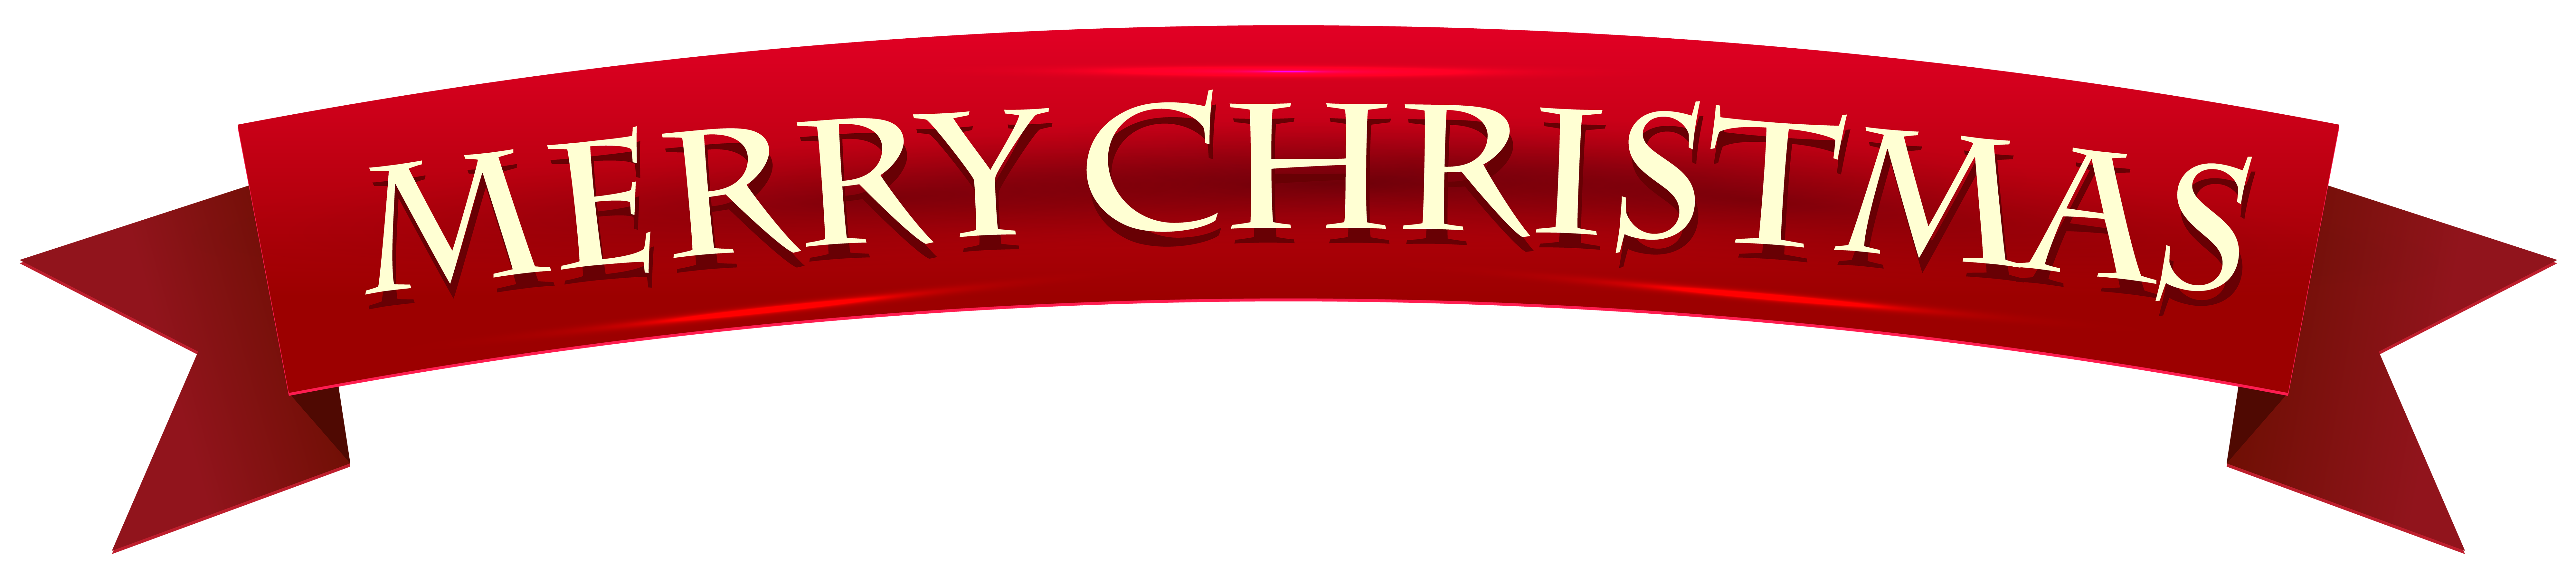 clip library Banner Merry Christmas Transparent Clip Art Image